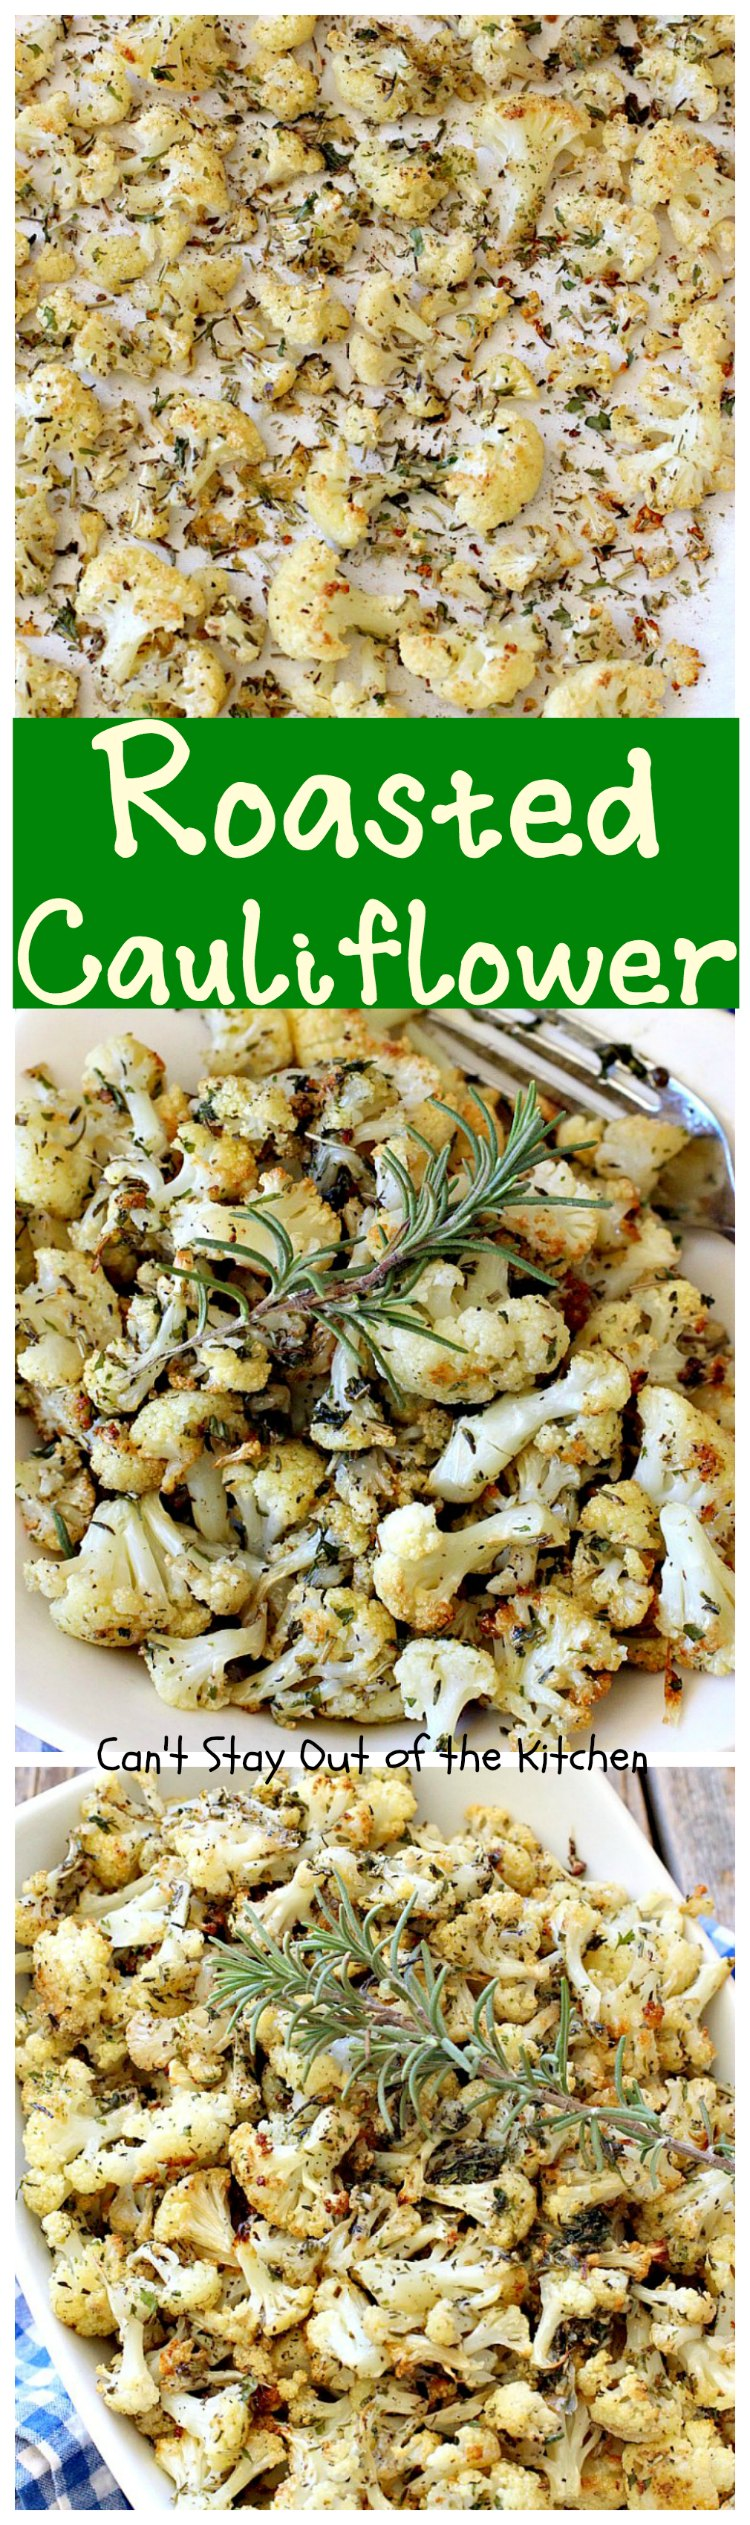 Roasted Cauliflower | Can't Stay Out of the Kitchen